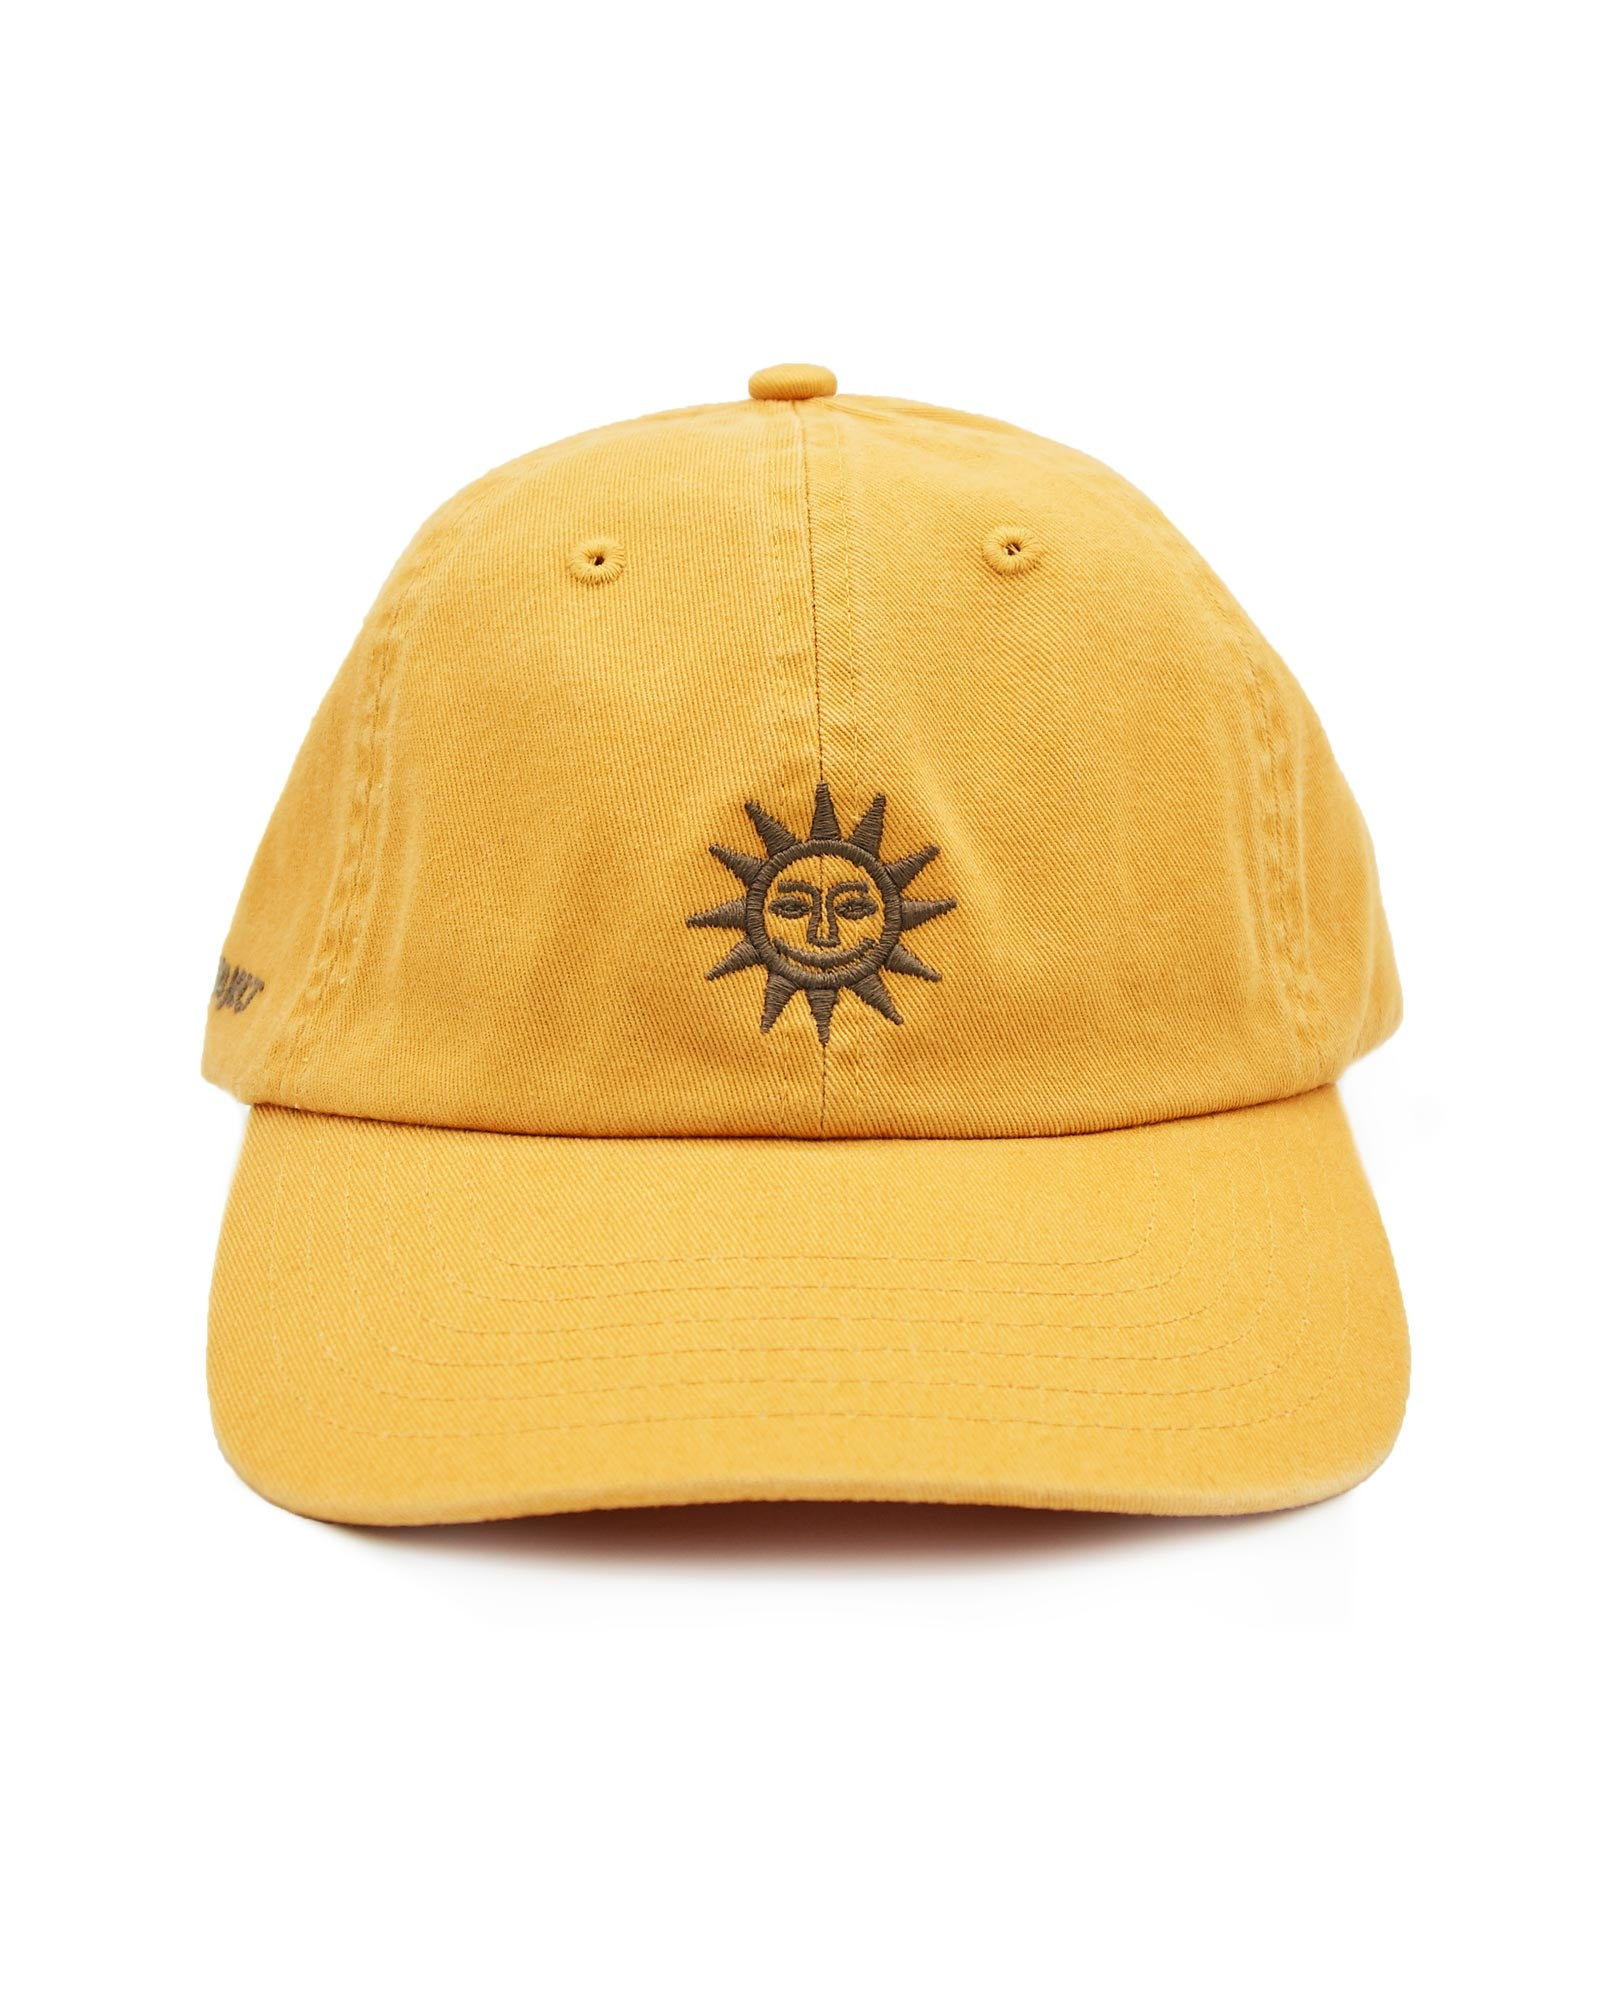 Golden Sun Dad Hat | Parks Project | National Park Hat